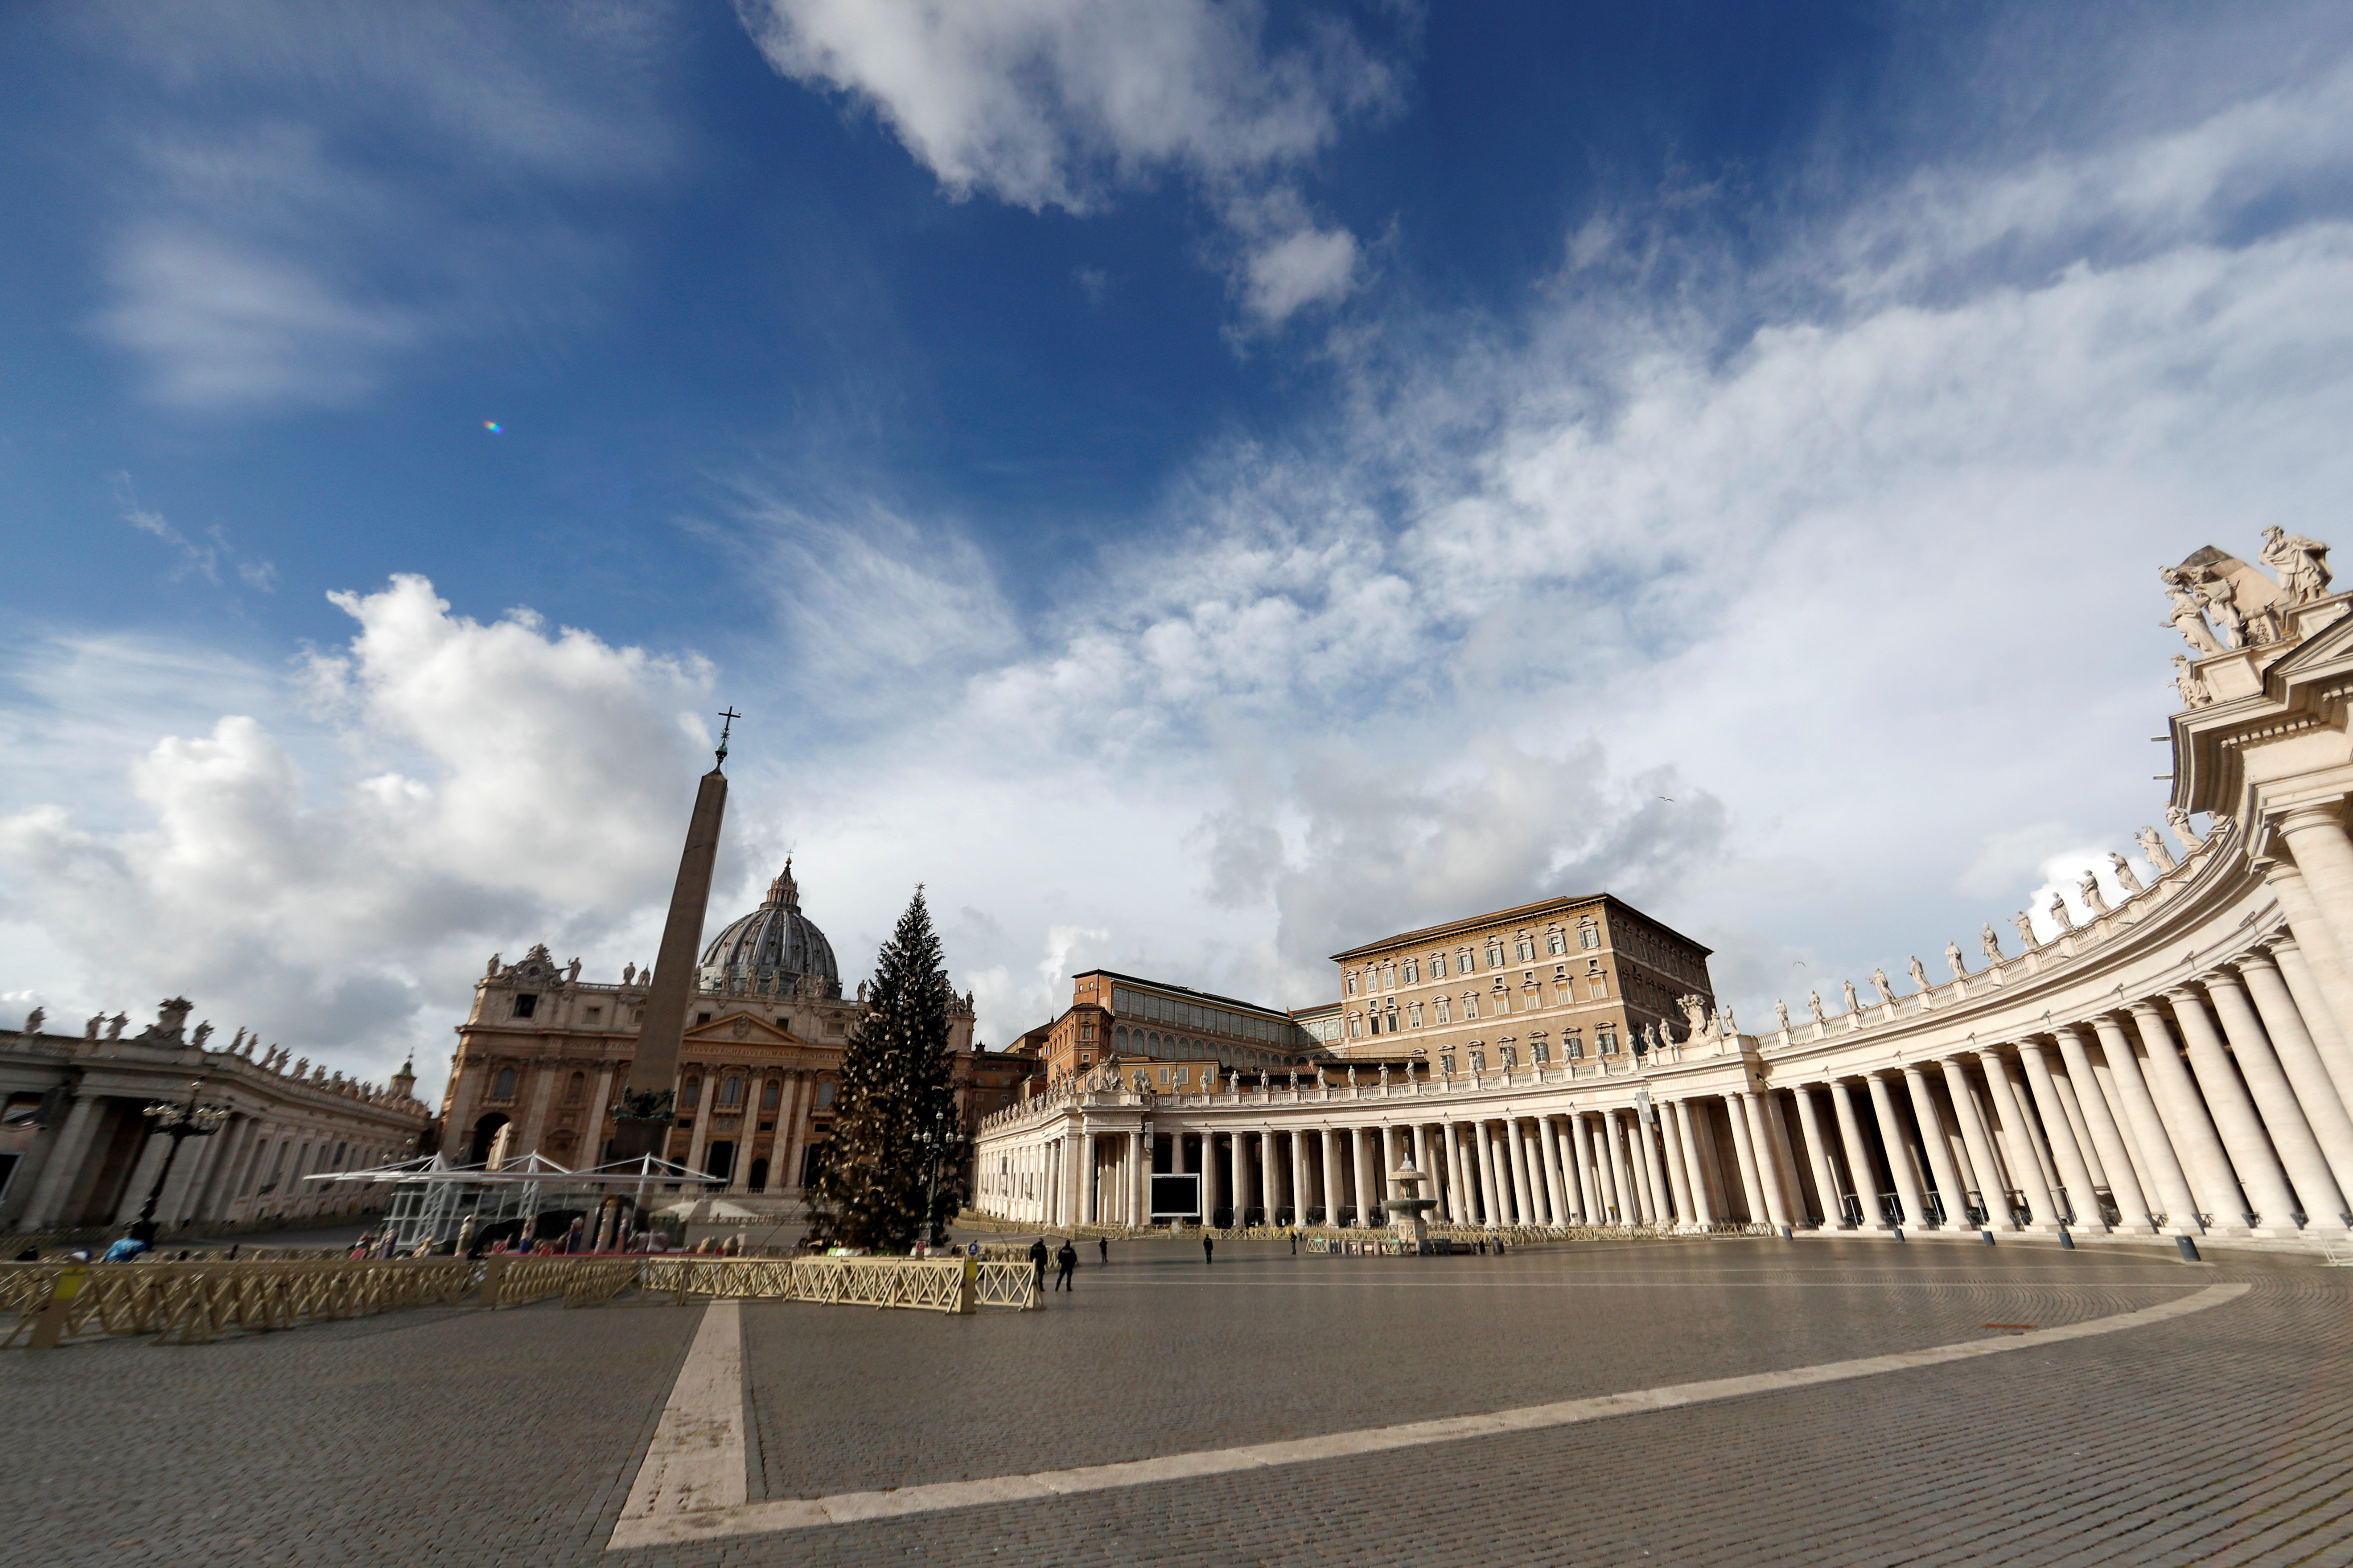 A general view of the deserted St. Peter's Square on Christmas Day amidst the coronavirus disease (COVID-19) lockdown, at the Vatican, December 25, 2020. REUTERS/Yara Nardi